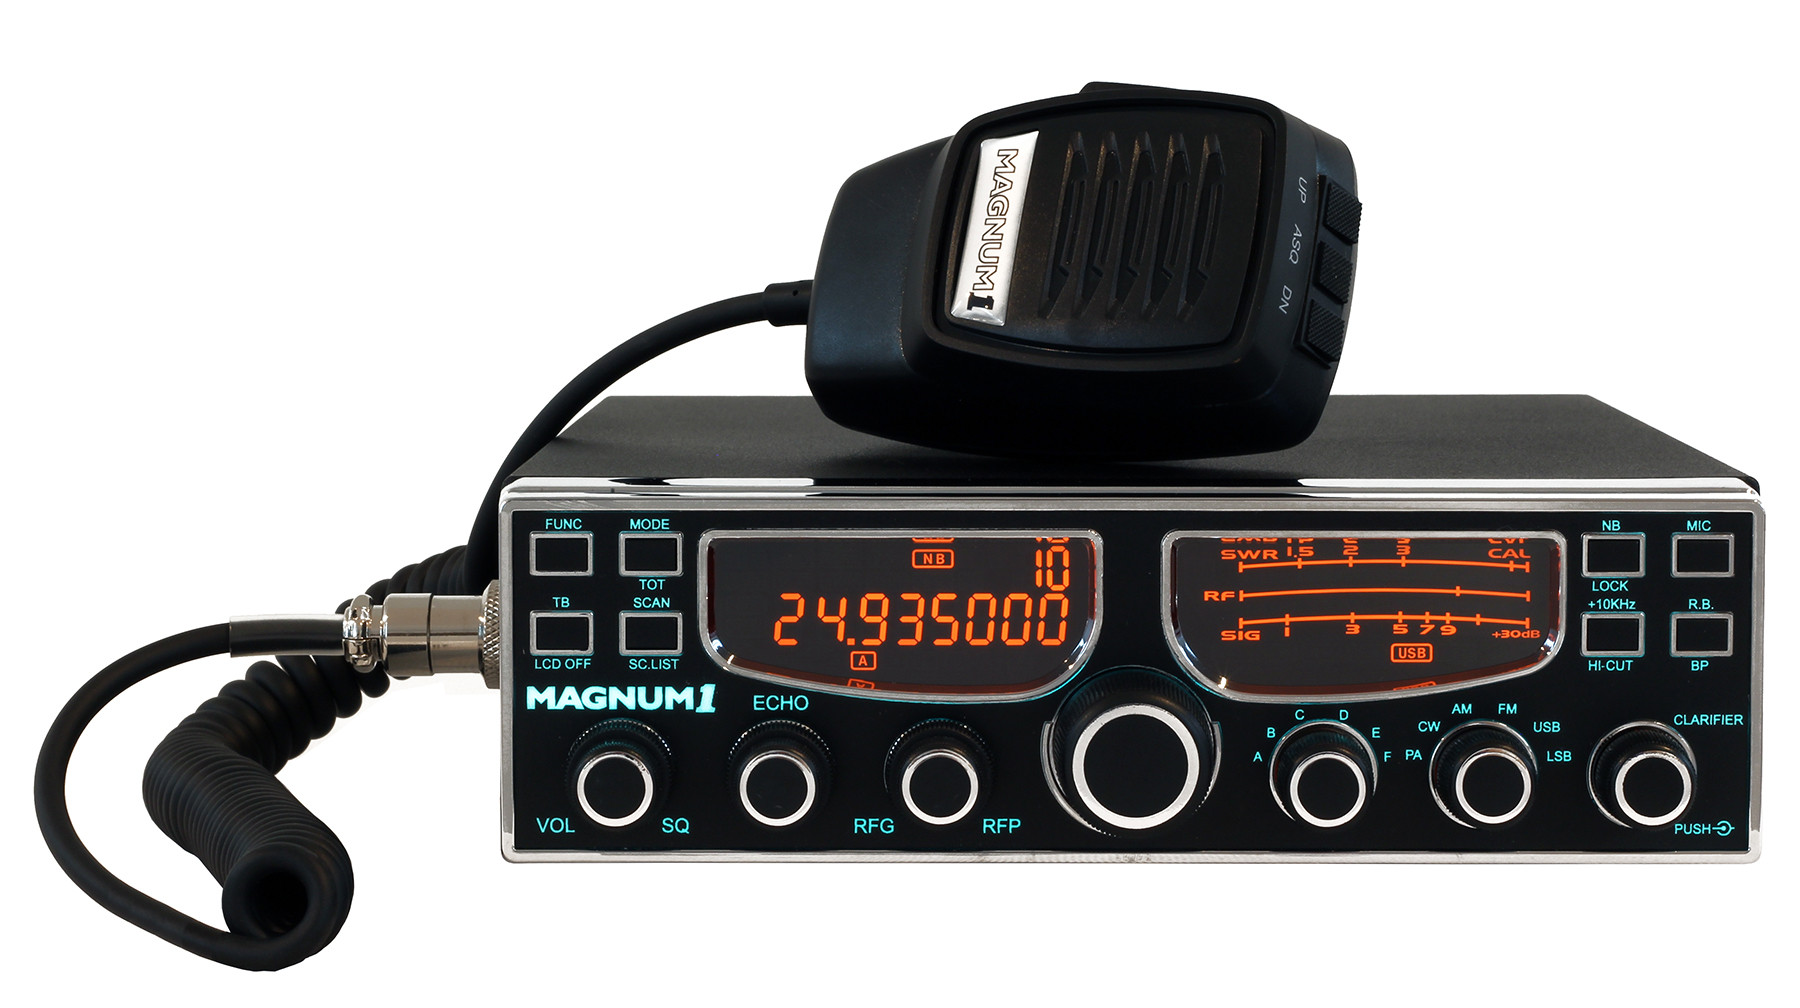 Magnum1 12m 10m Amateur Transmitter Magnum Am Cw Ham Bands Buy 6 For 24500 Each And Save 15